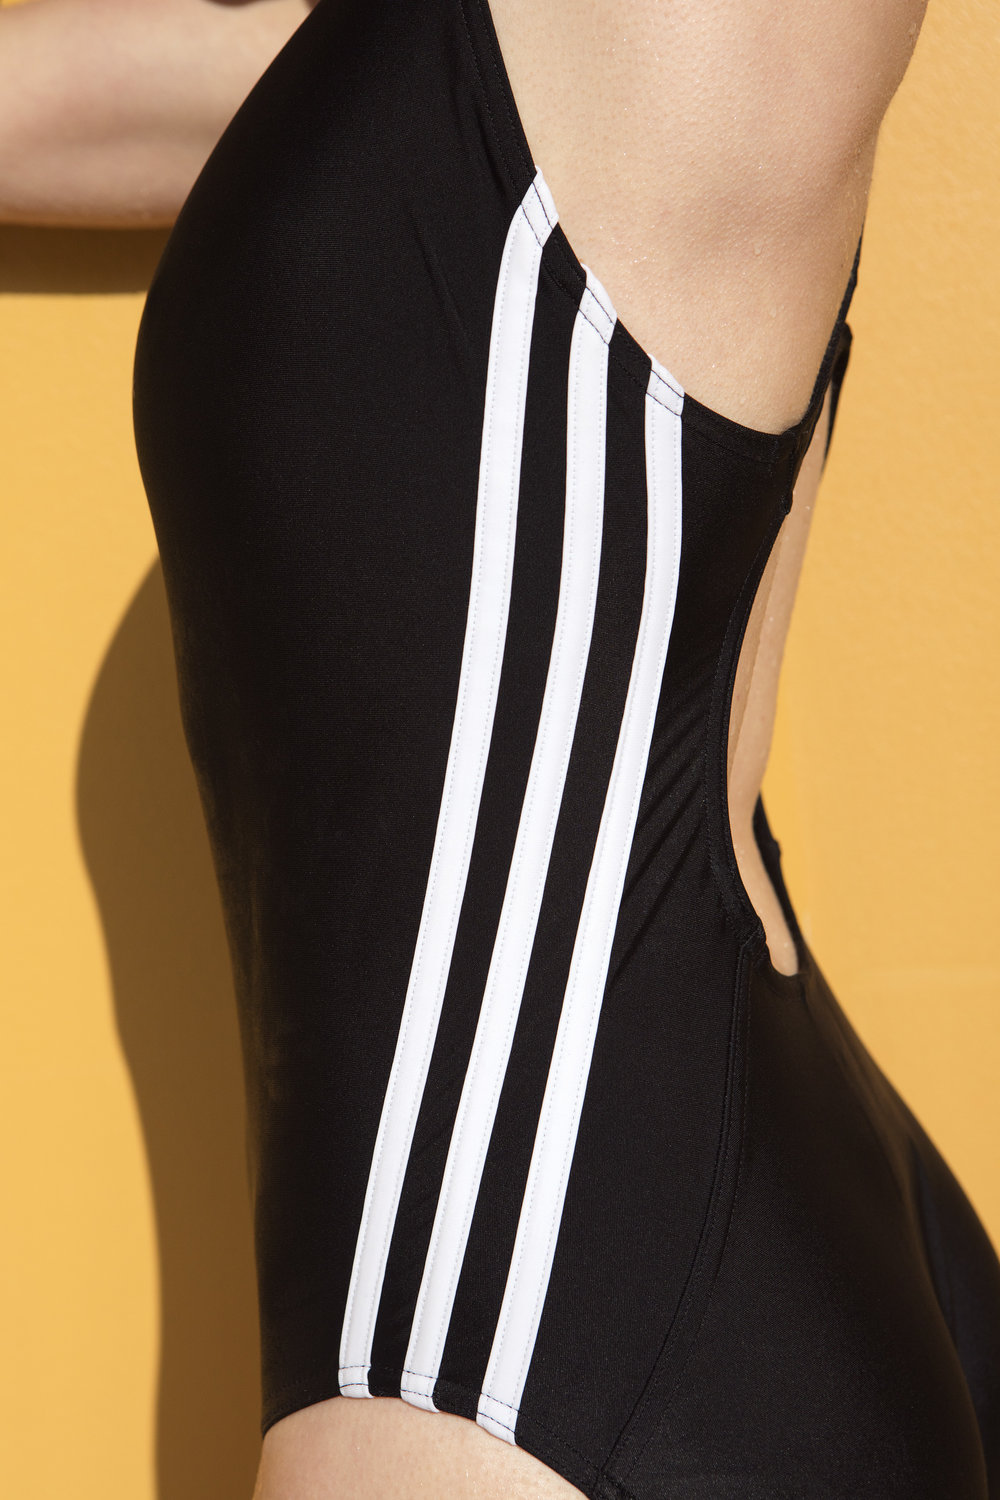 Copy of Copy of Maillot: Adidas